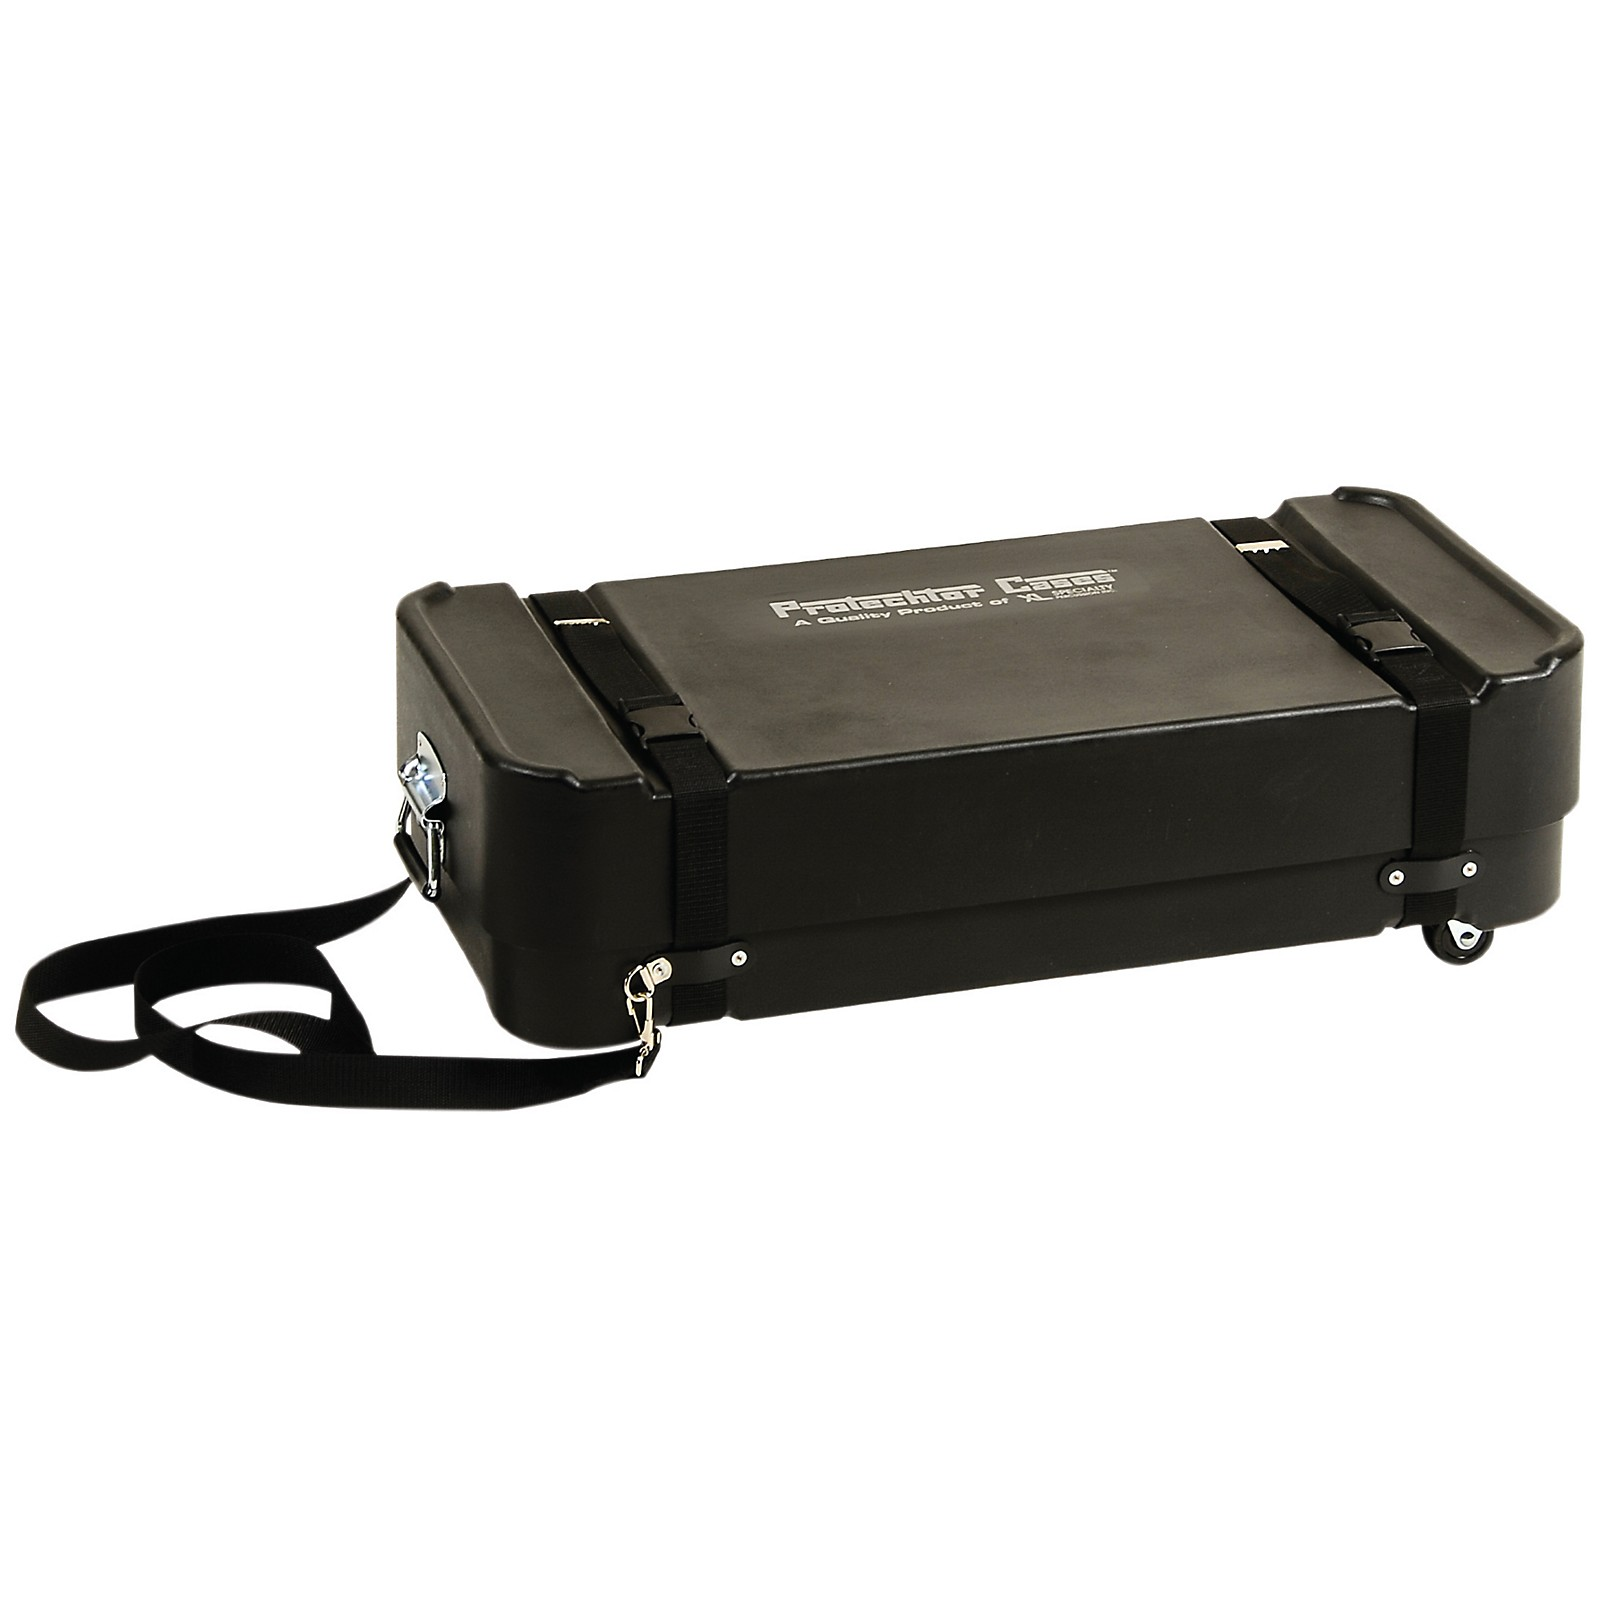 Protechtor Cases Protechtor Classic Super Ultra Compact Accessory Case with Wheels